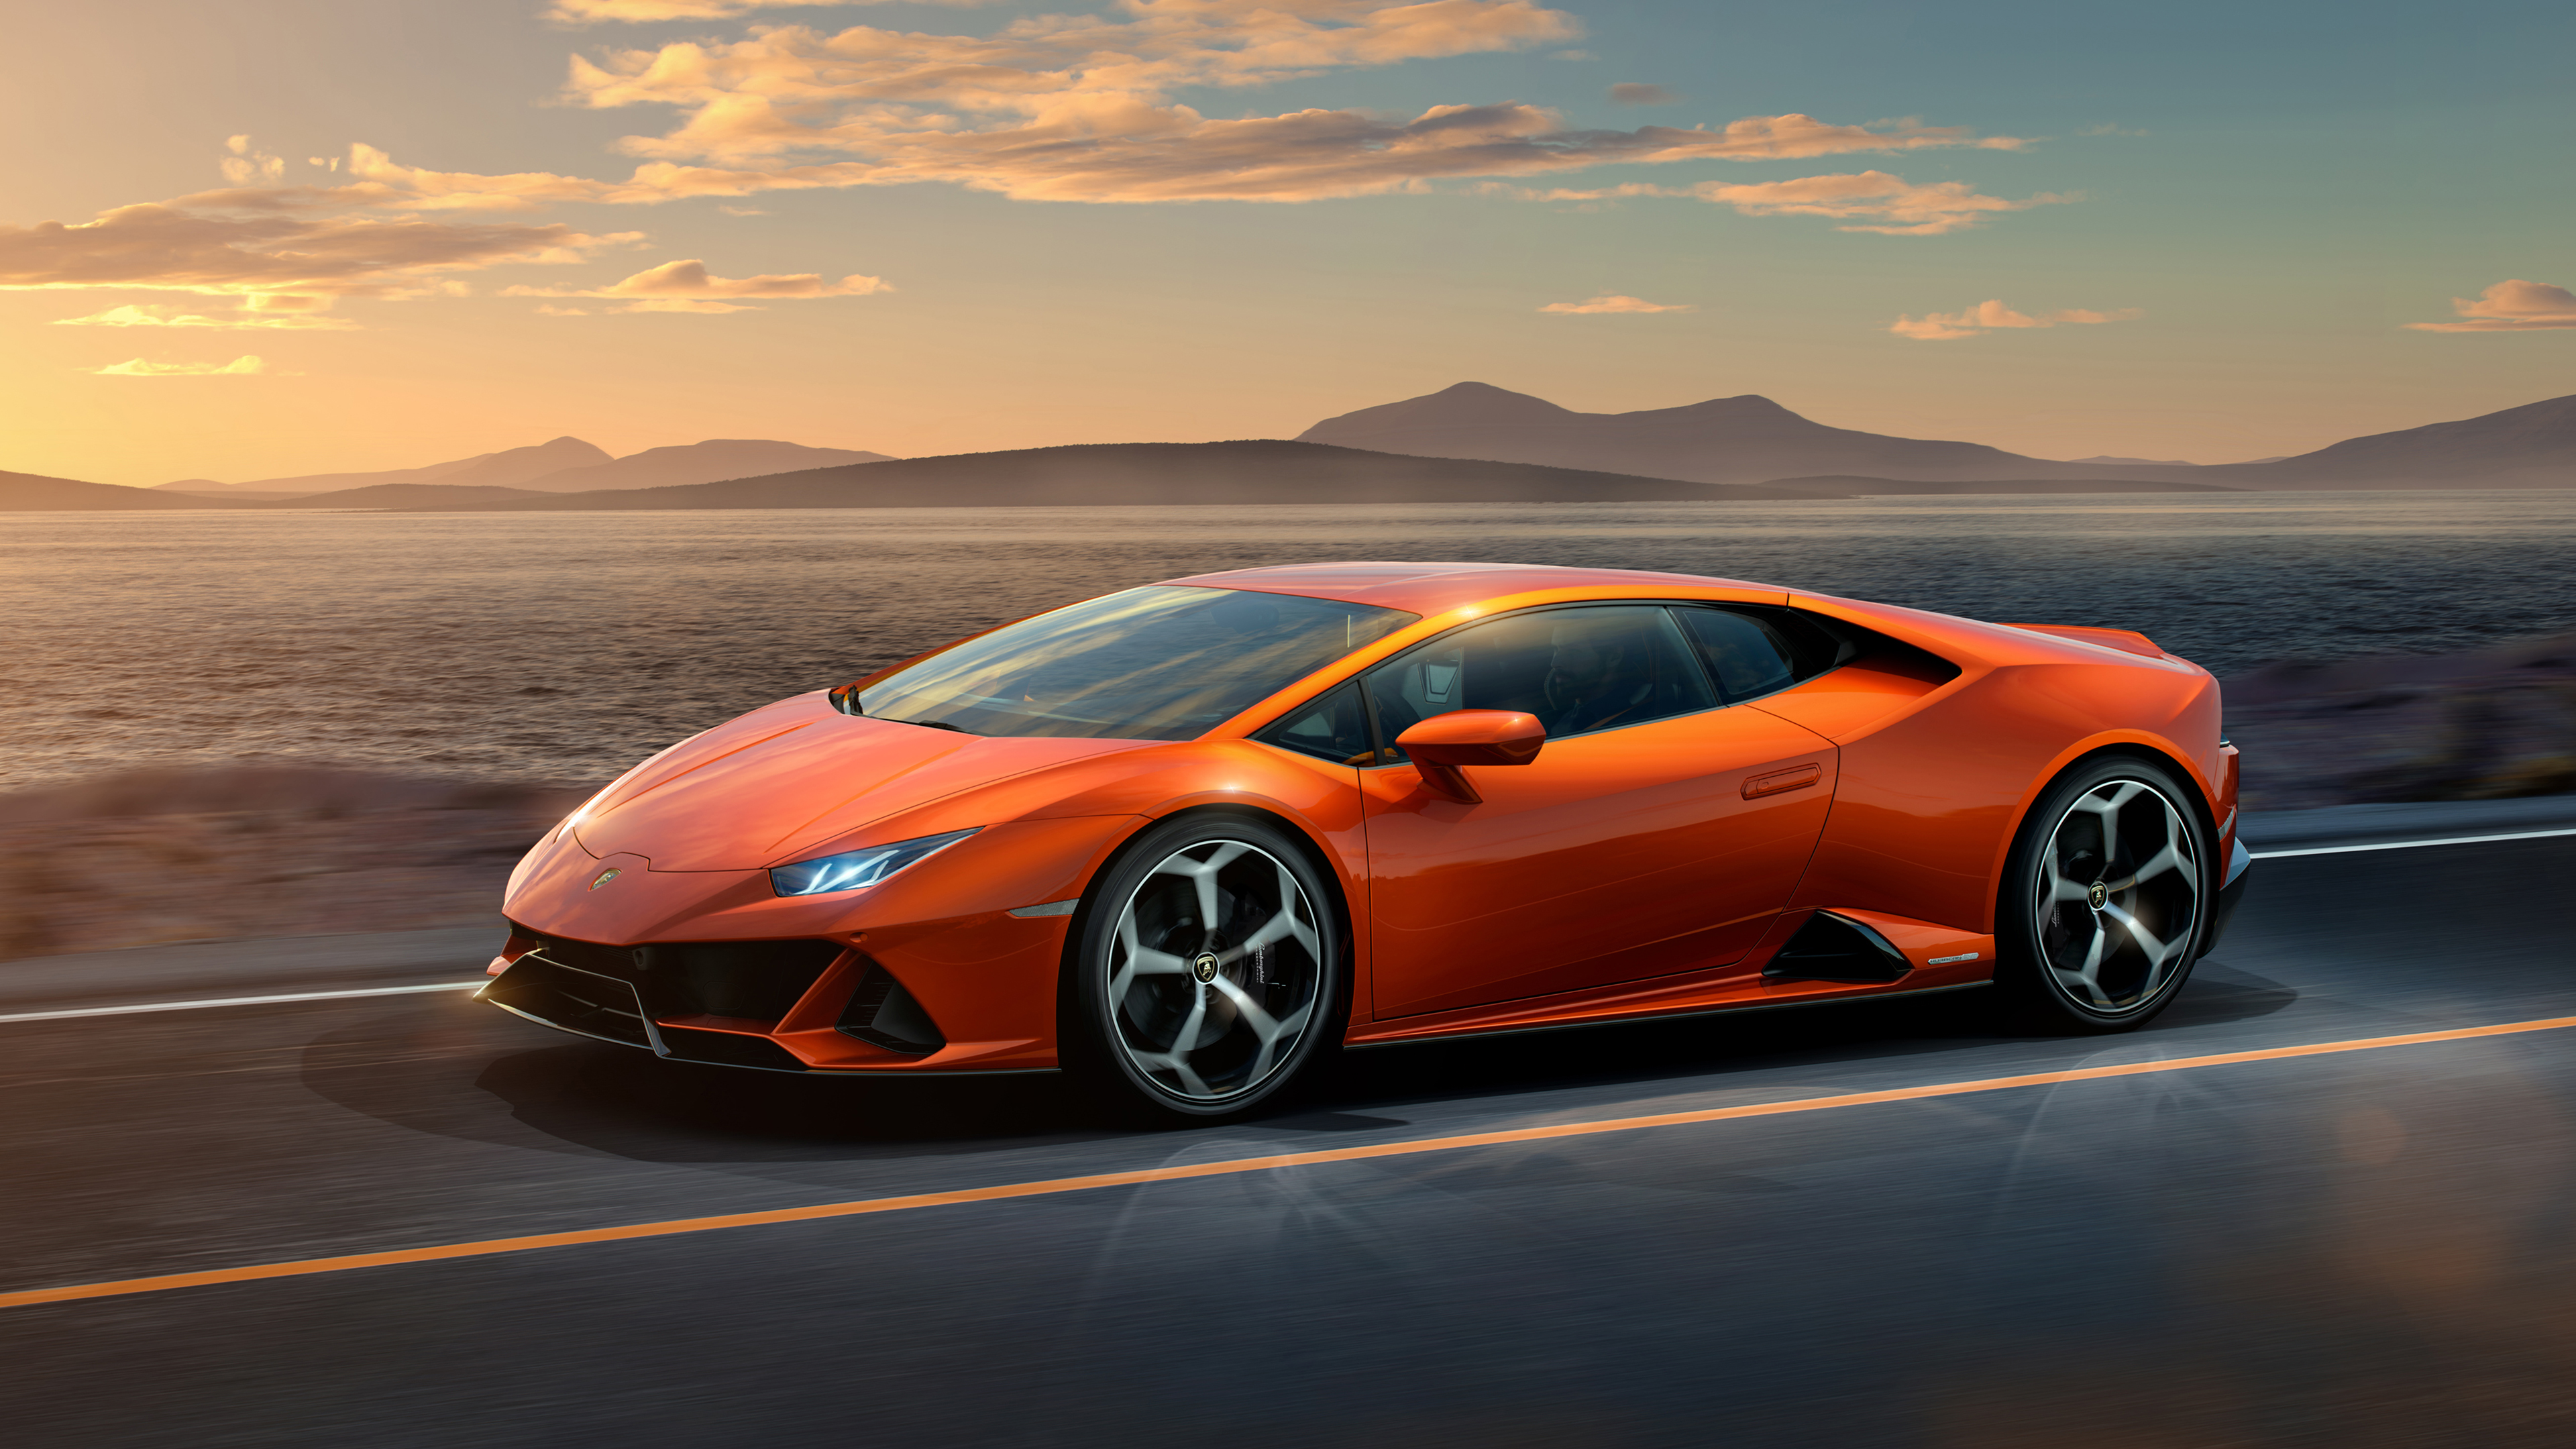 Lamborghini Huracan Evo 2019 4k Wallpaper Hd Car Wallpapers Id